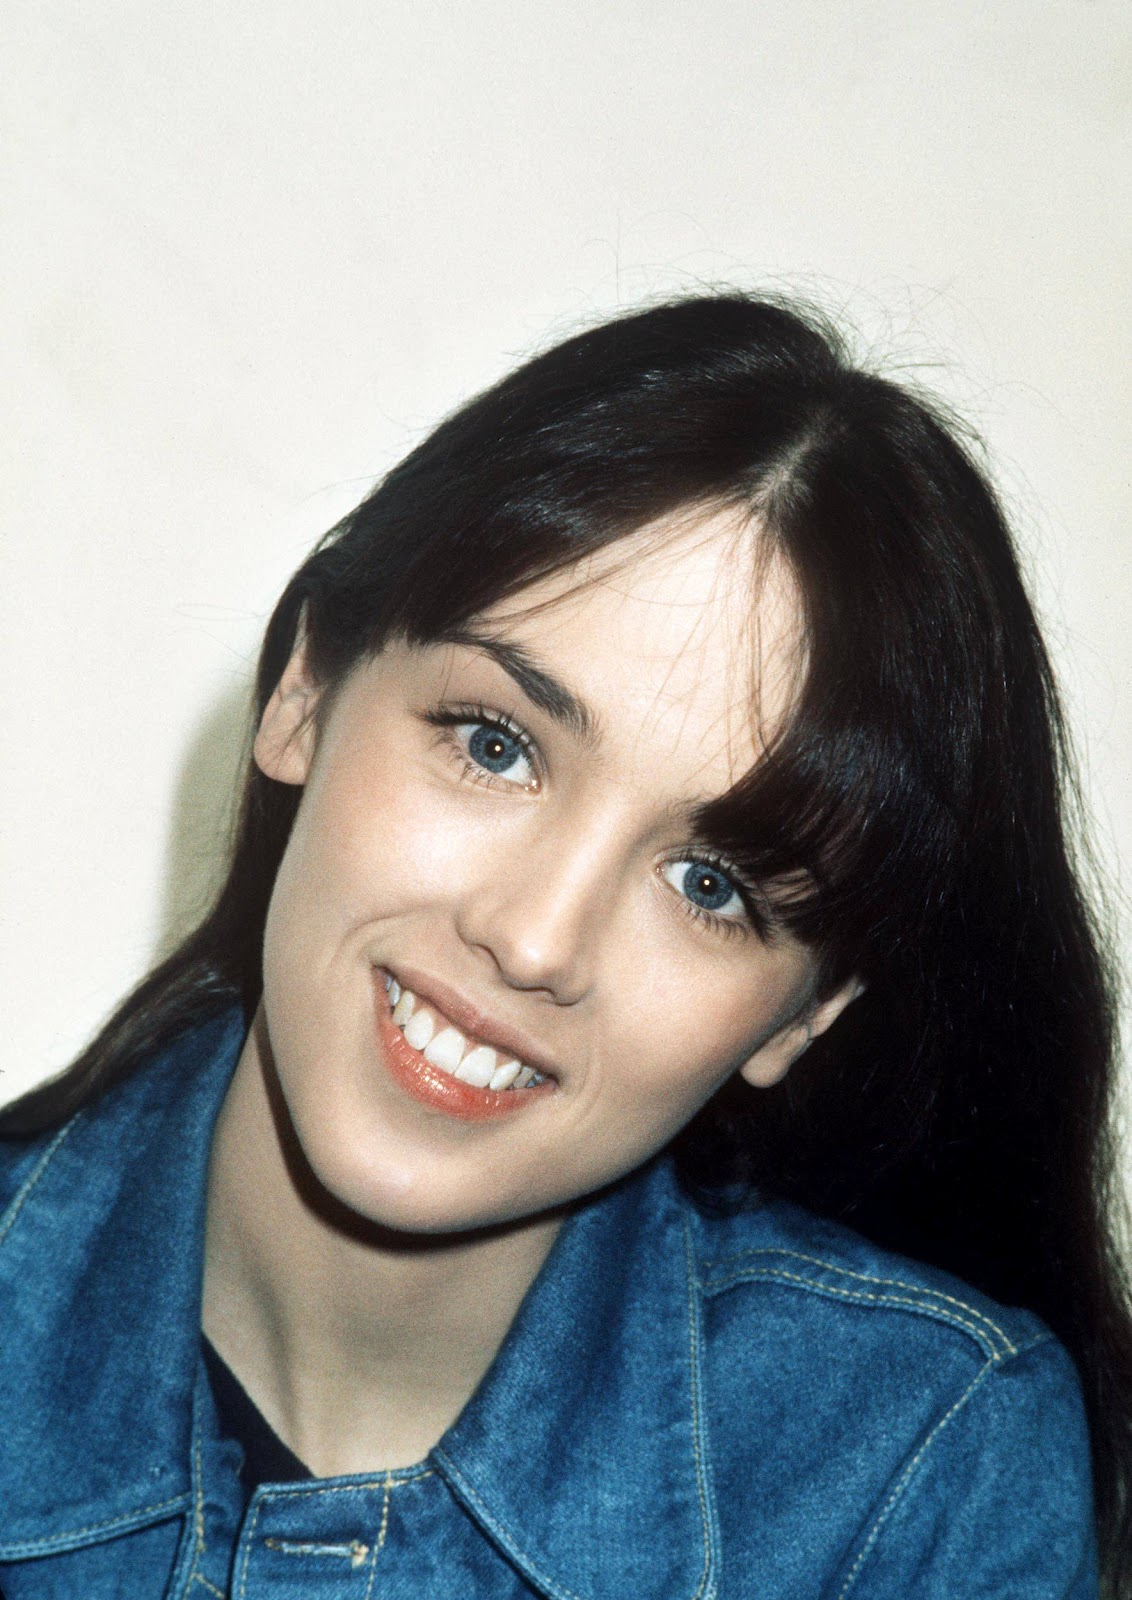 Isabelle Adjani photo gallery - 213 high quality pics of Isabelle ...: www.theplace2.ru/photos/Isabelle-Adjani-md344